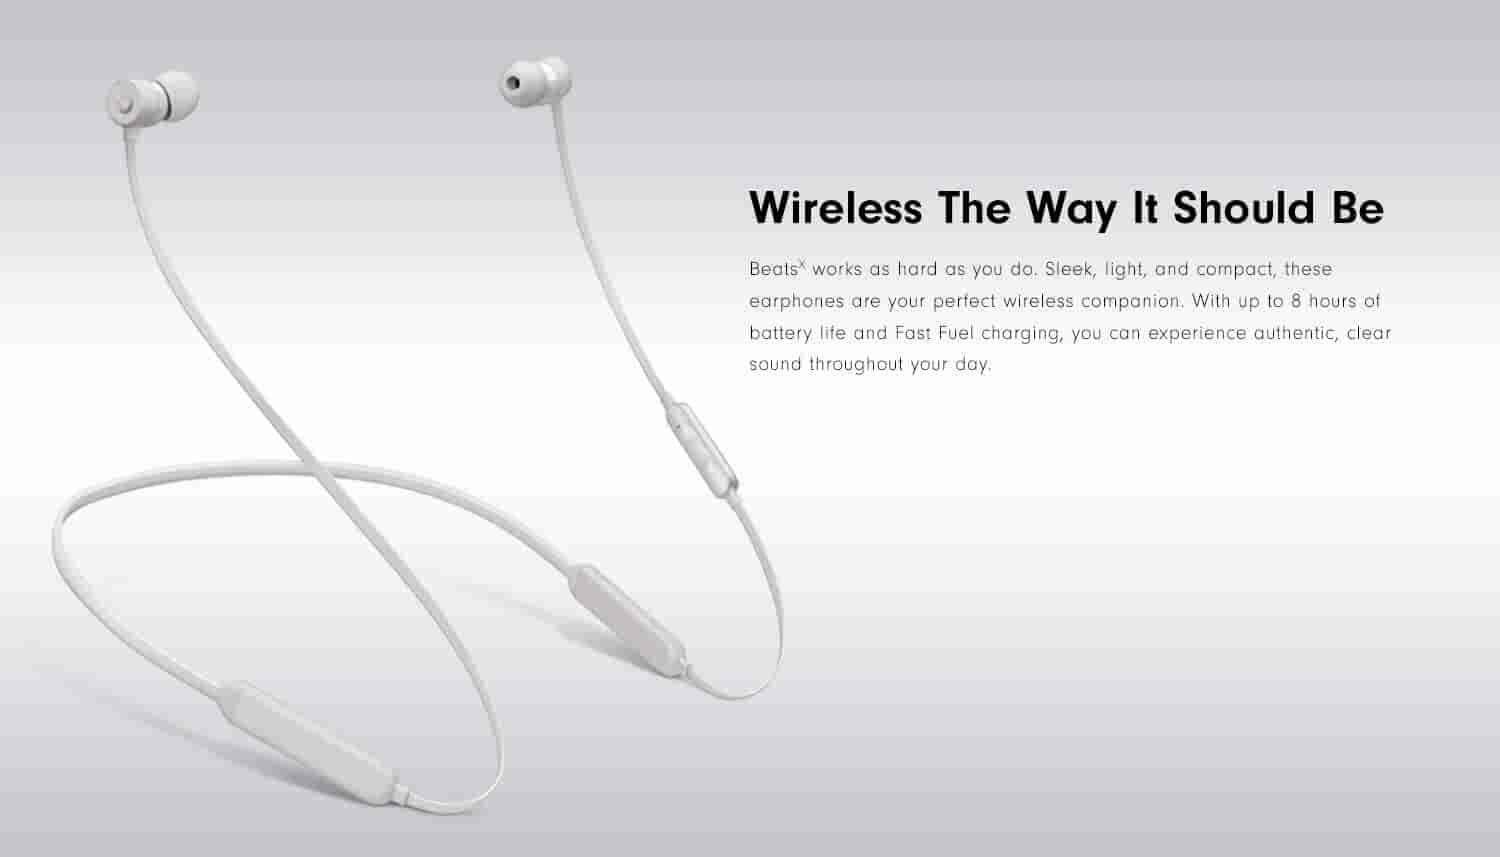 Wireless The Way It Should Be